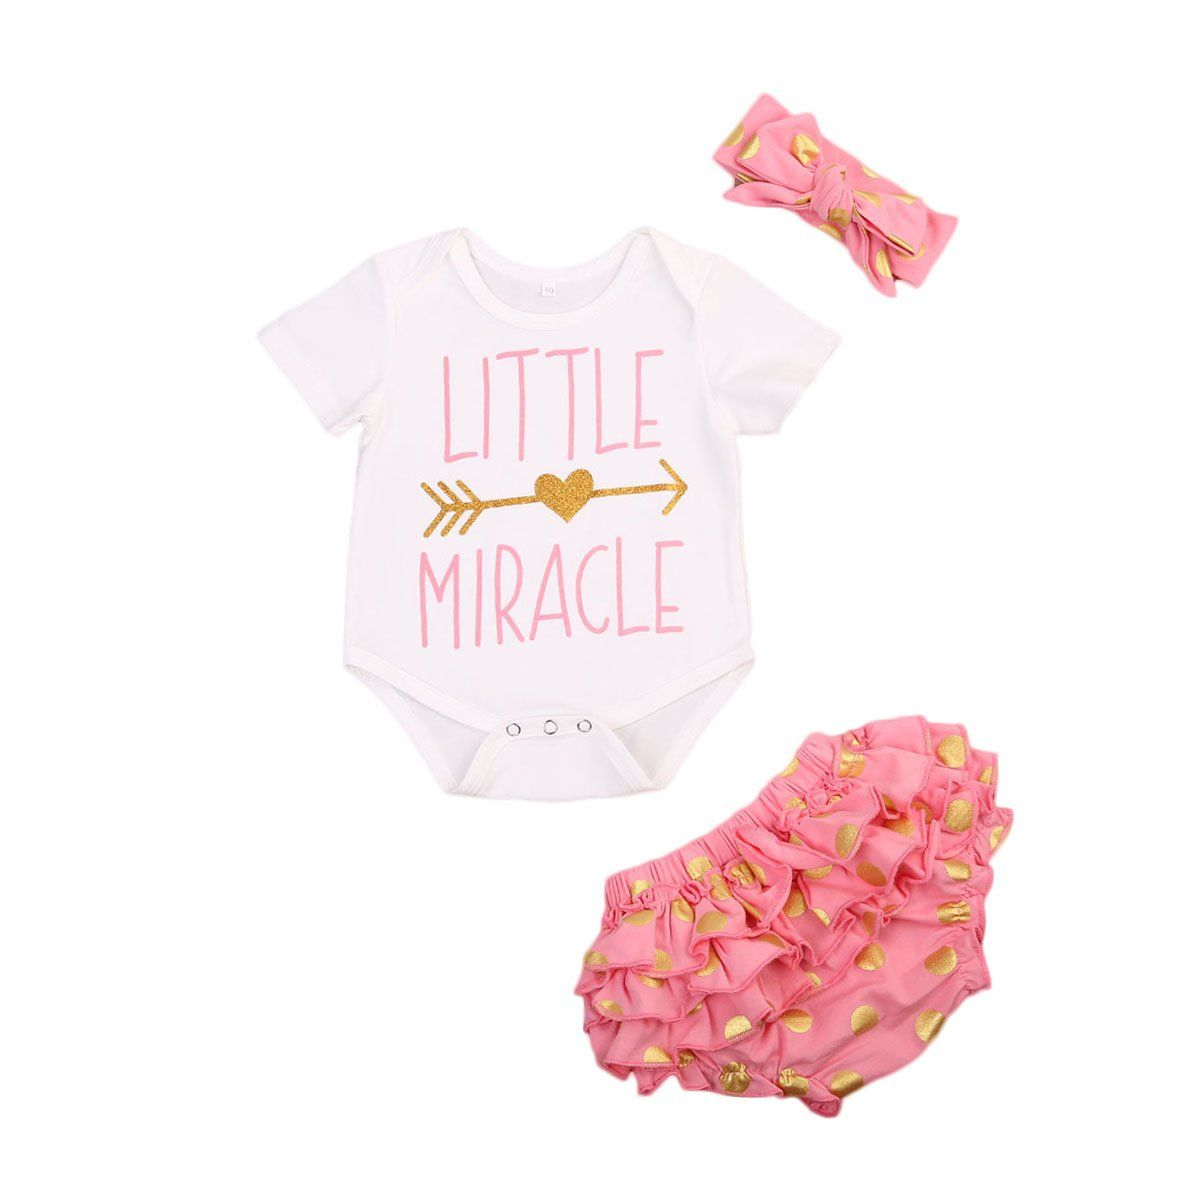 c0164993e Newborn Baby Clothing Girls Princess Outfits Clothes Rompers+Floral ...